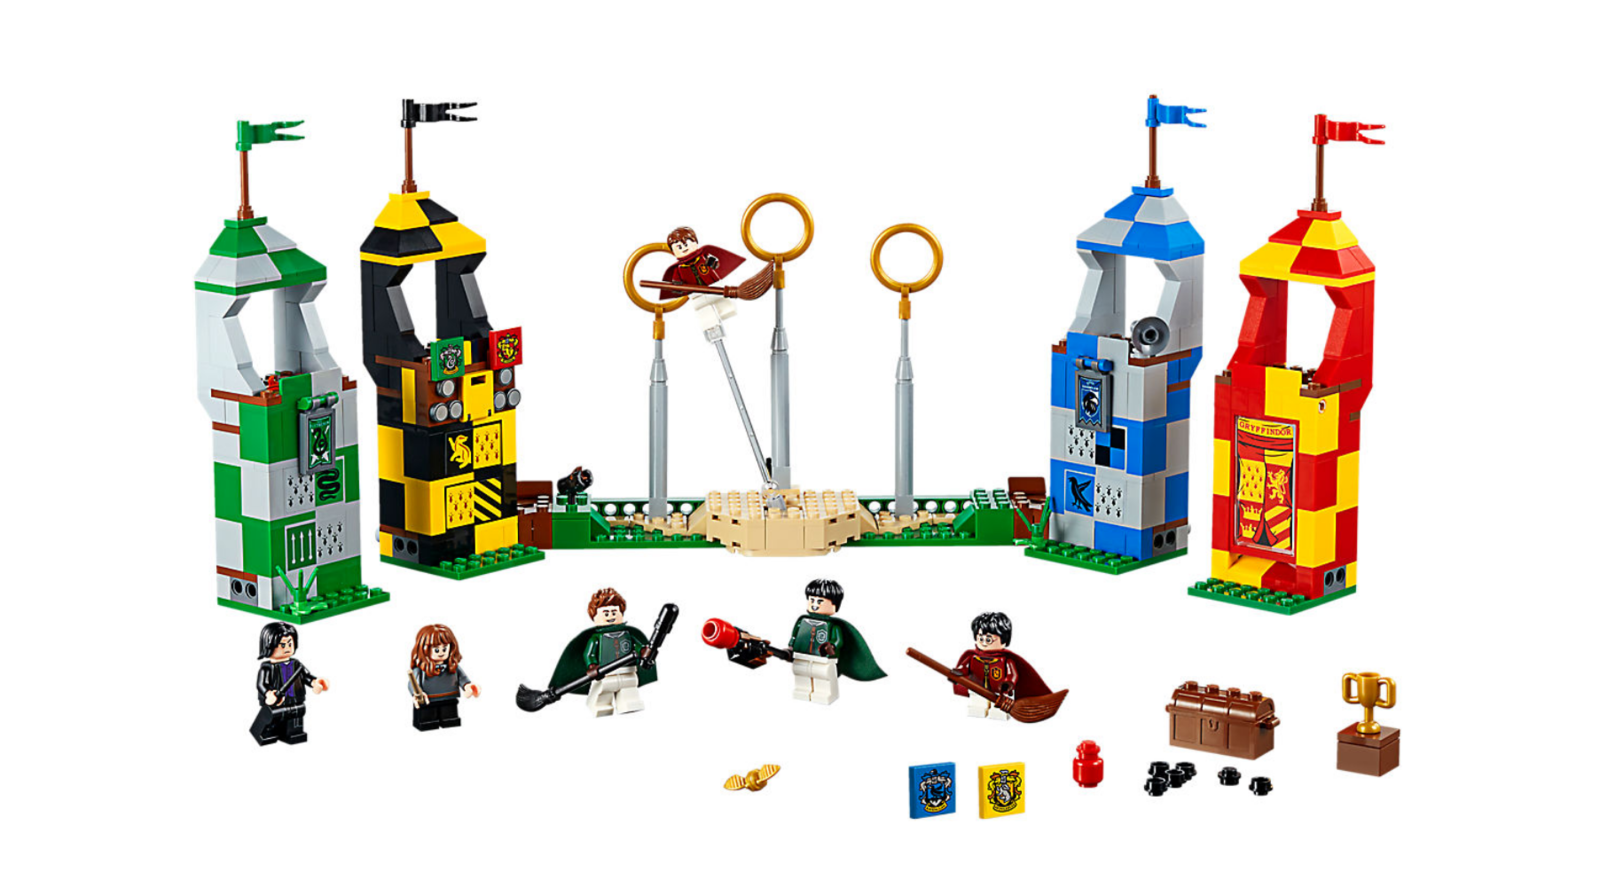 Lego harry potter castle 2018 australia